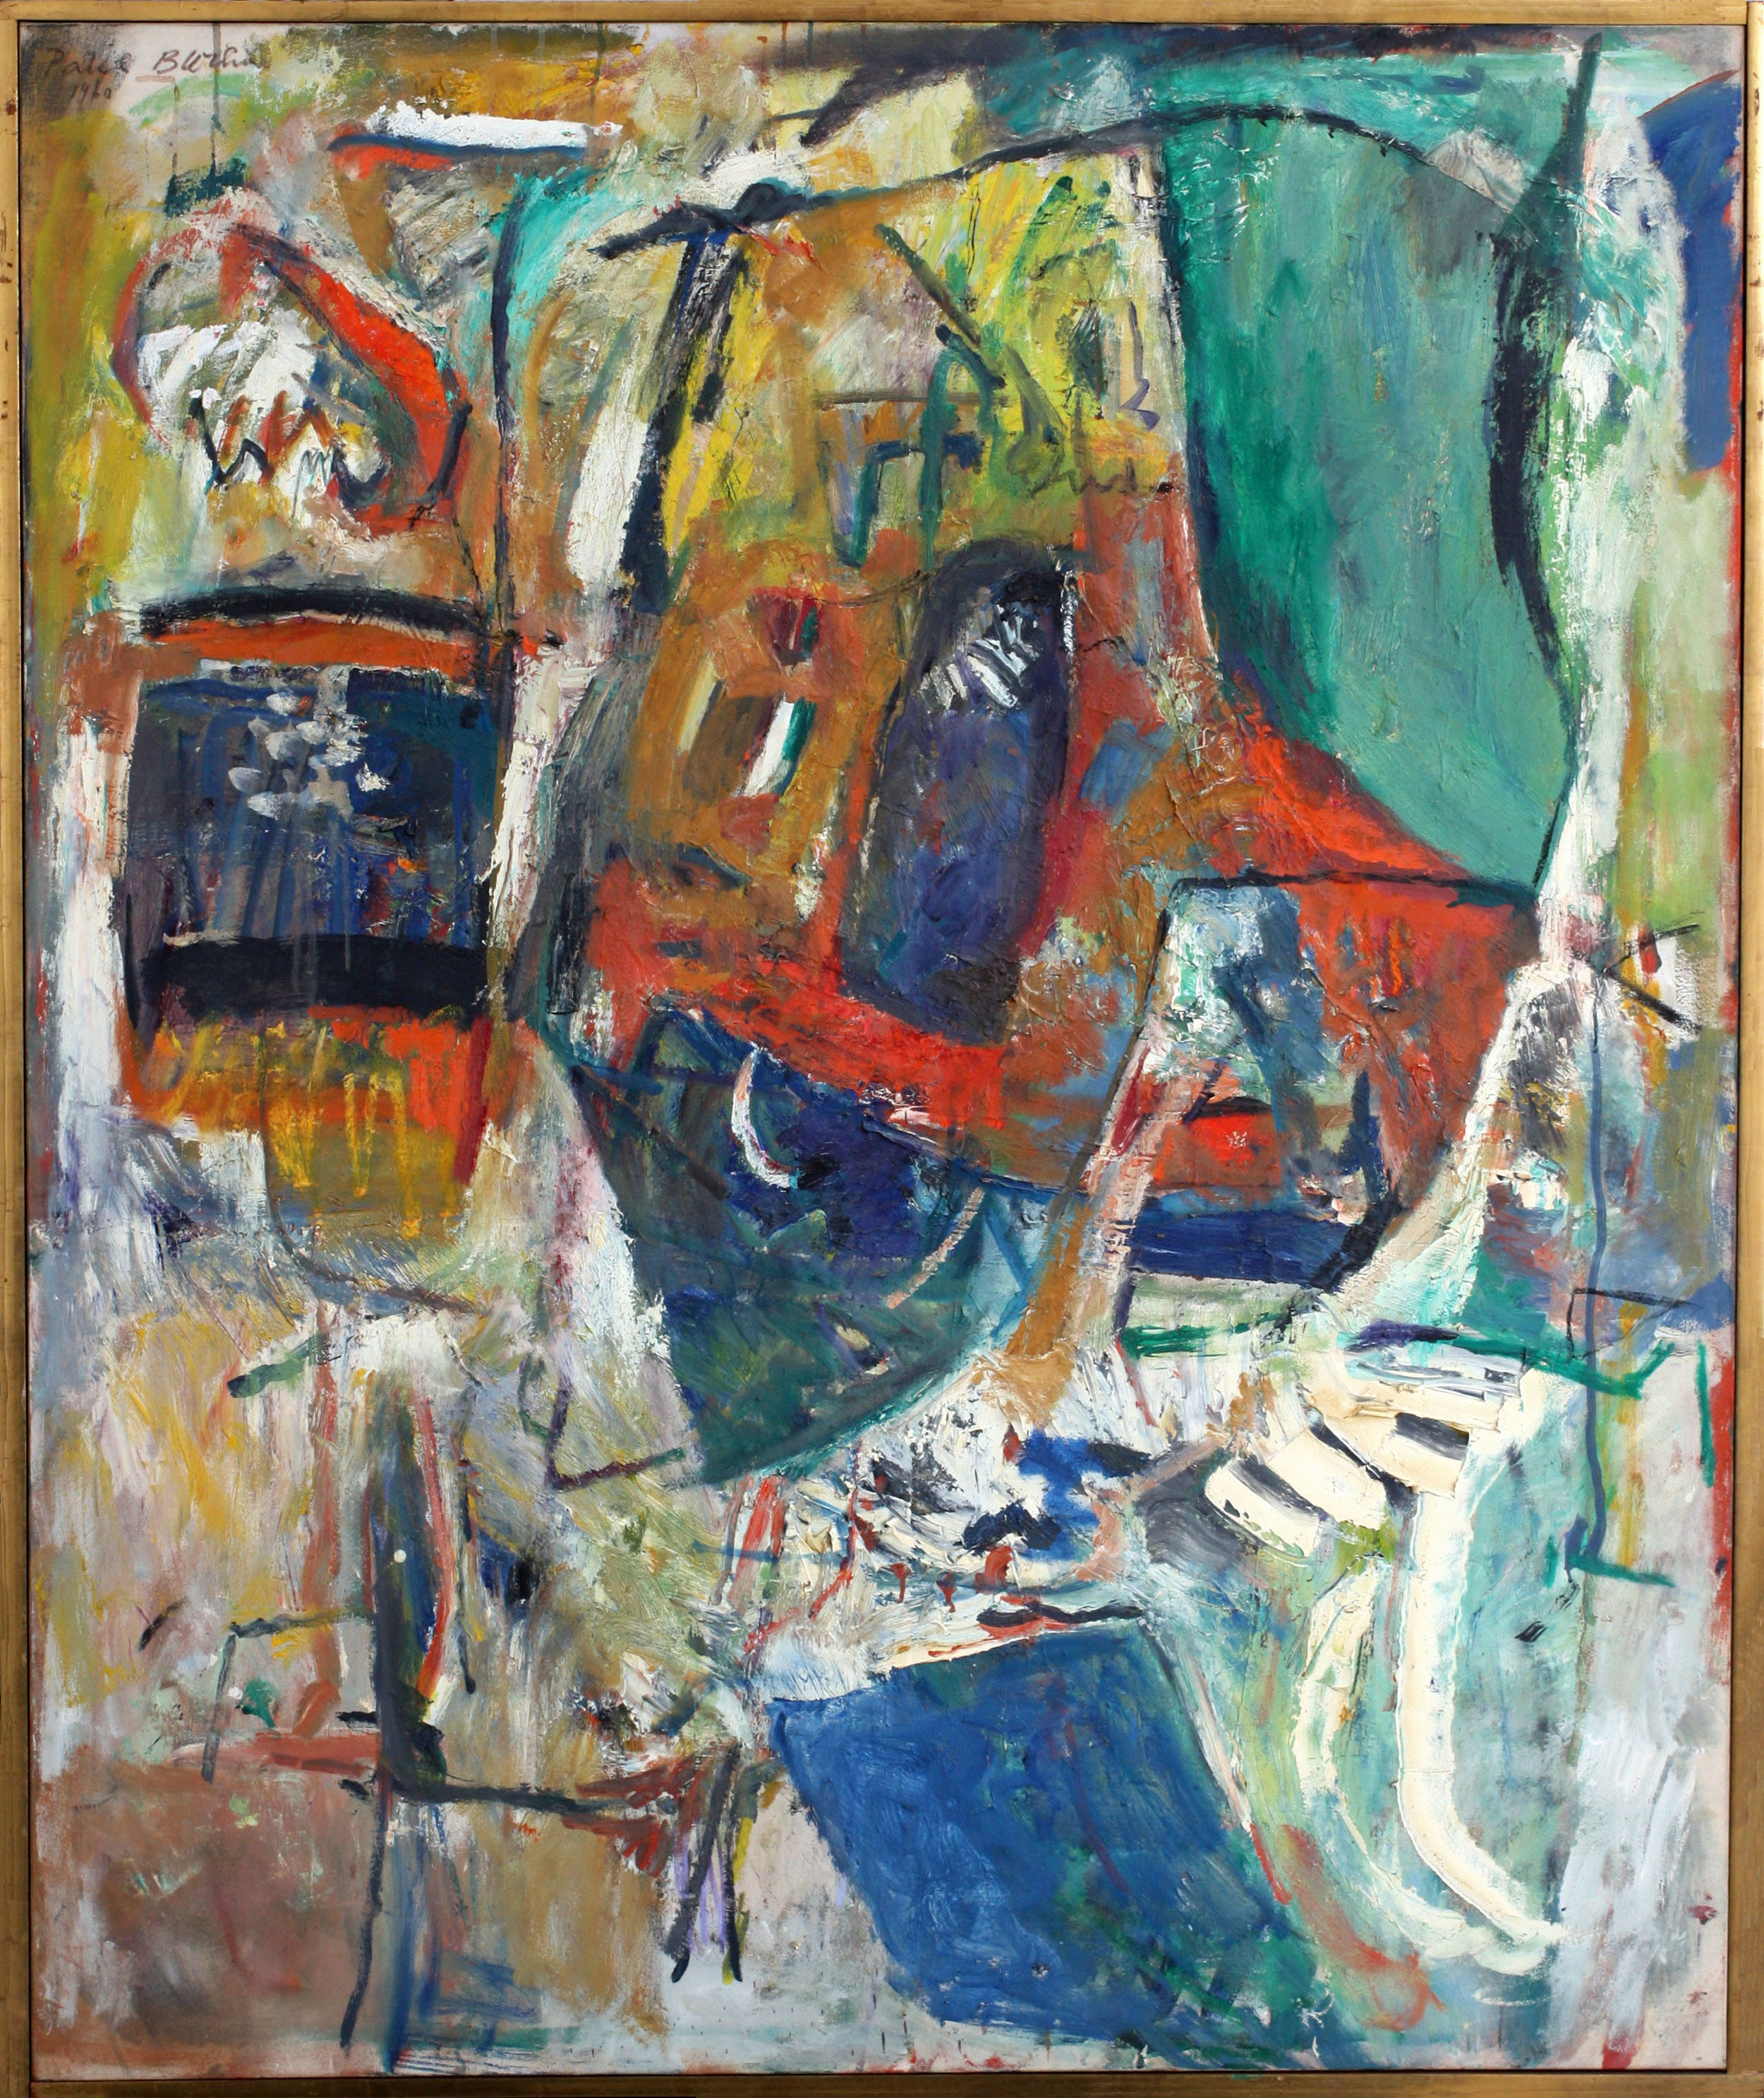 Untitled (Totem) 1960  , oil on canvas, 50 x 60 inches